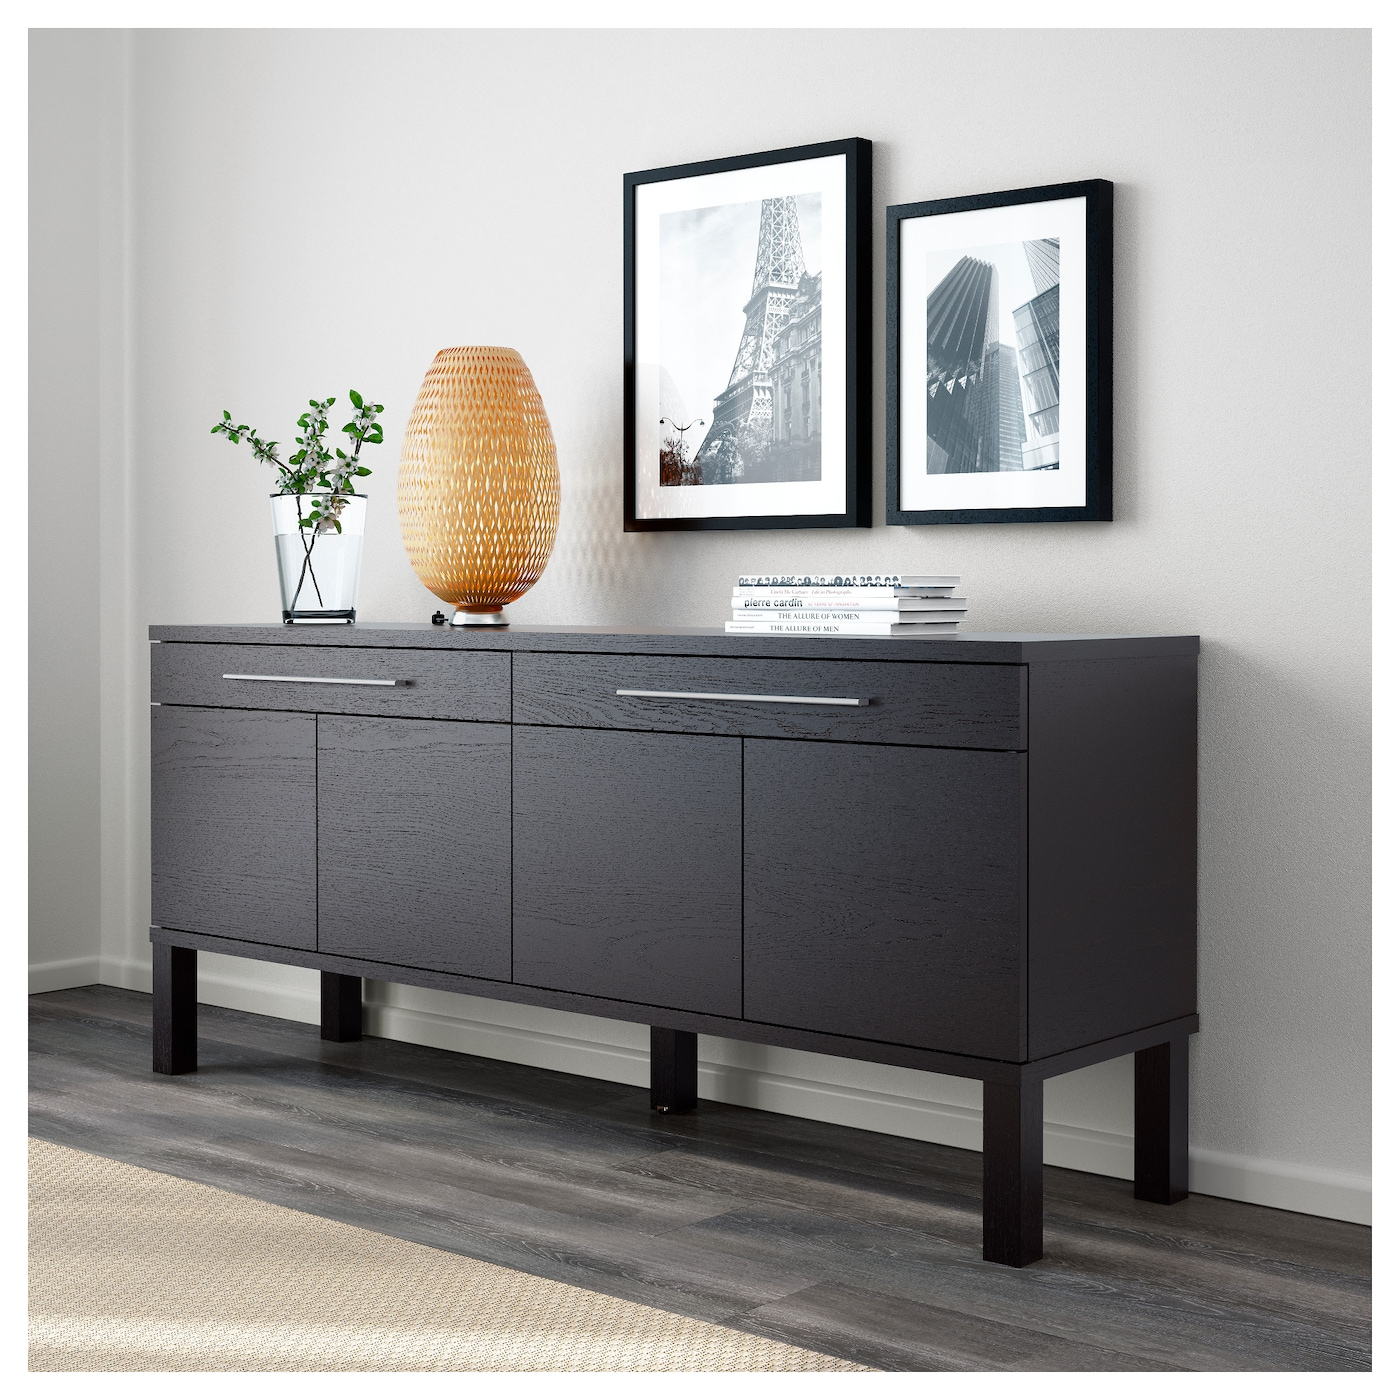 Bjursta sideboard brown black 155x68 cm ikea for Sideboard ikea